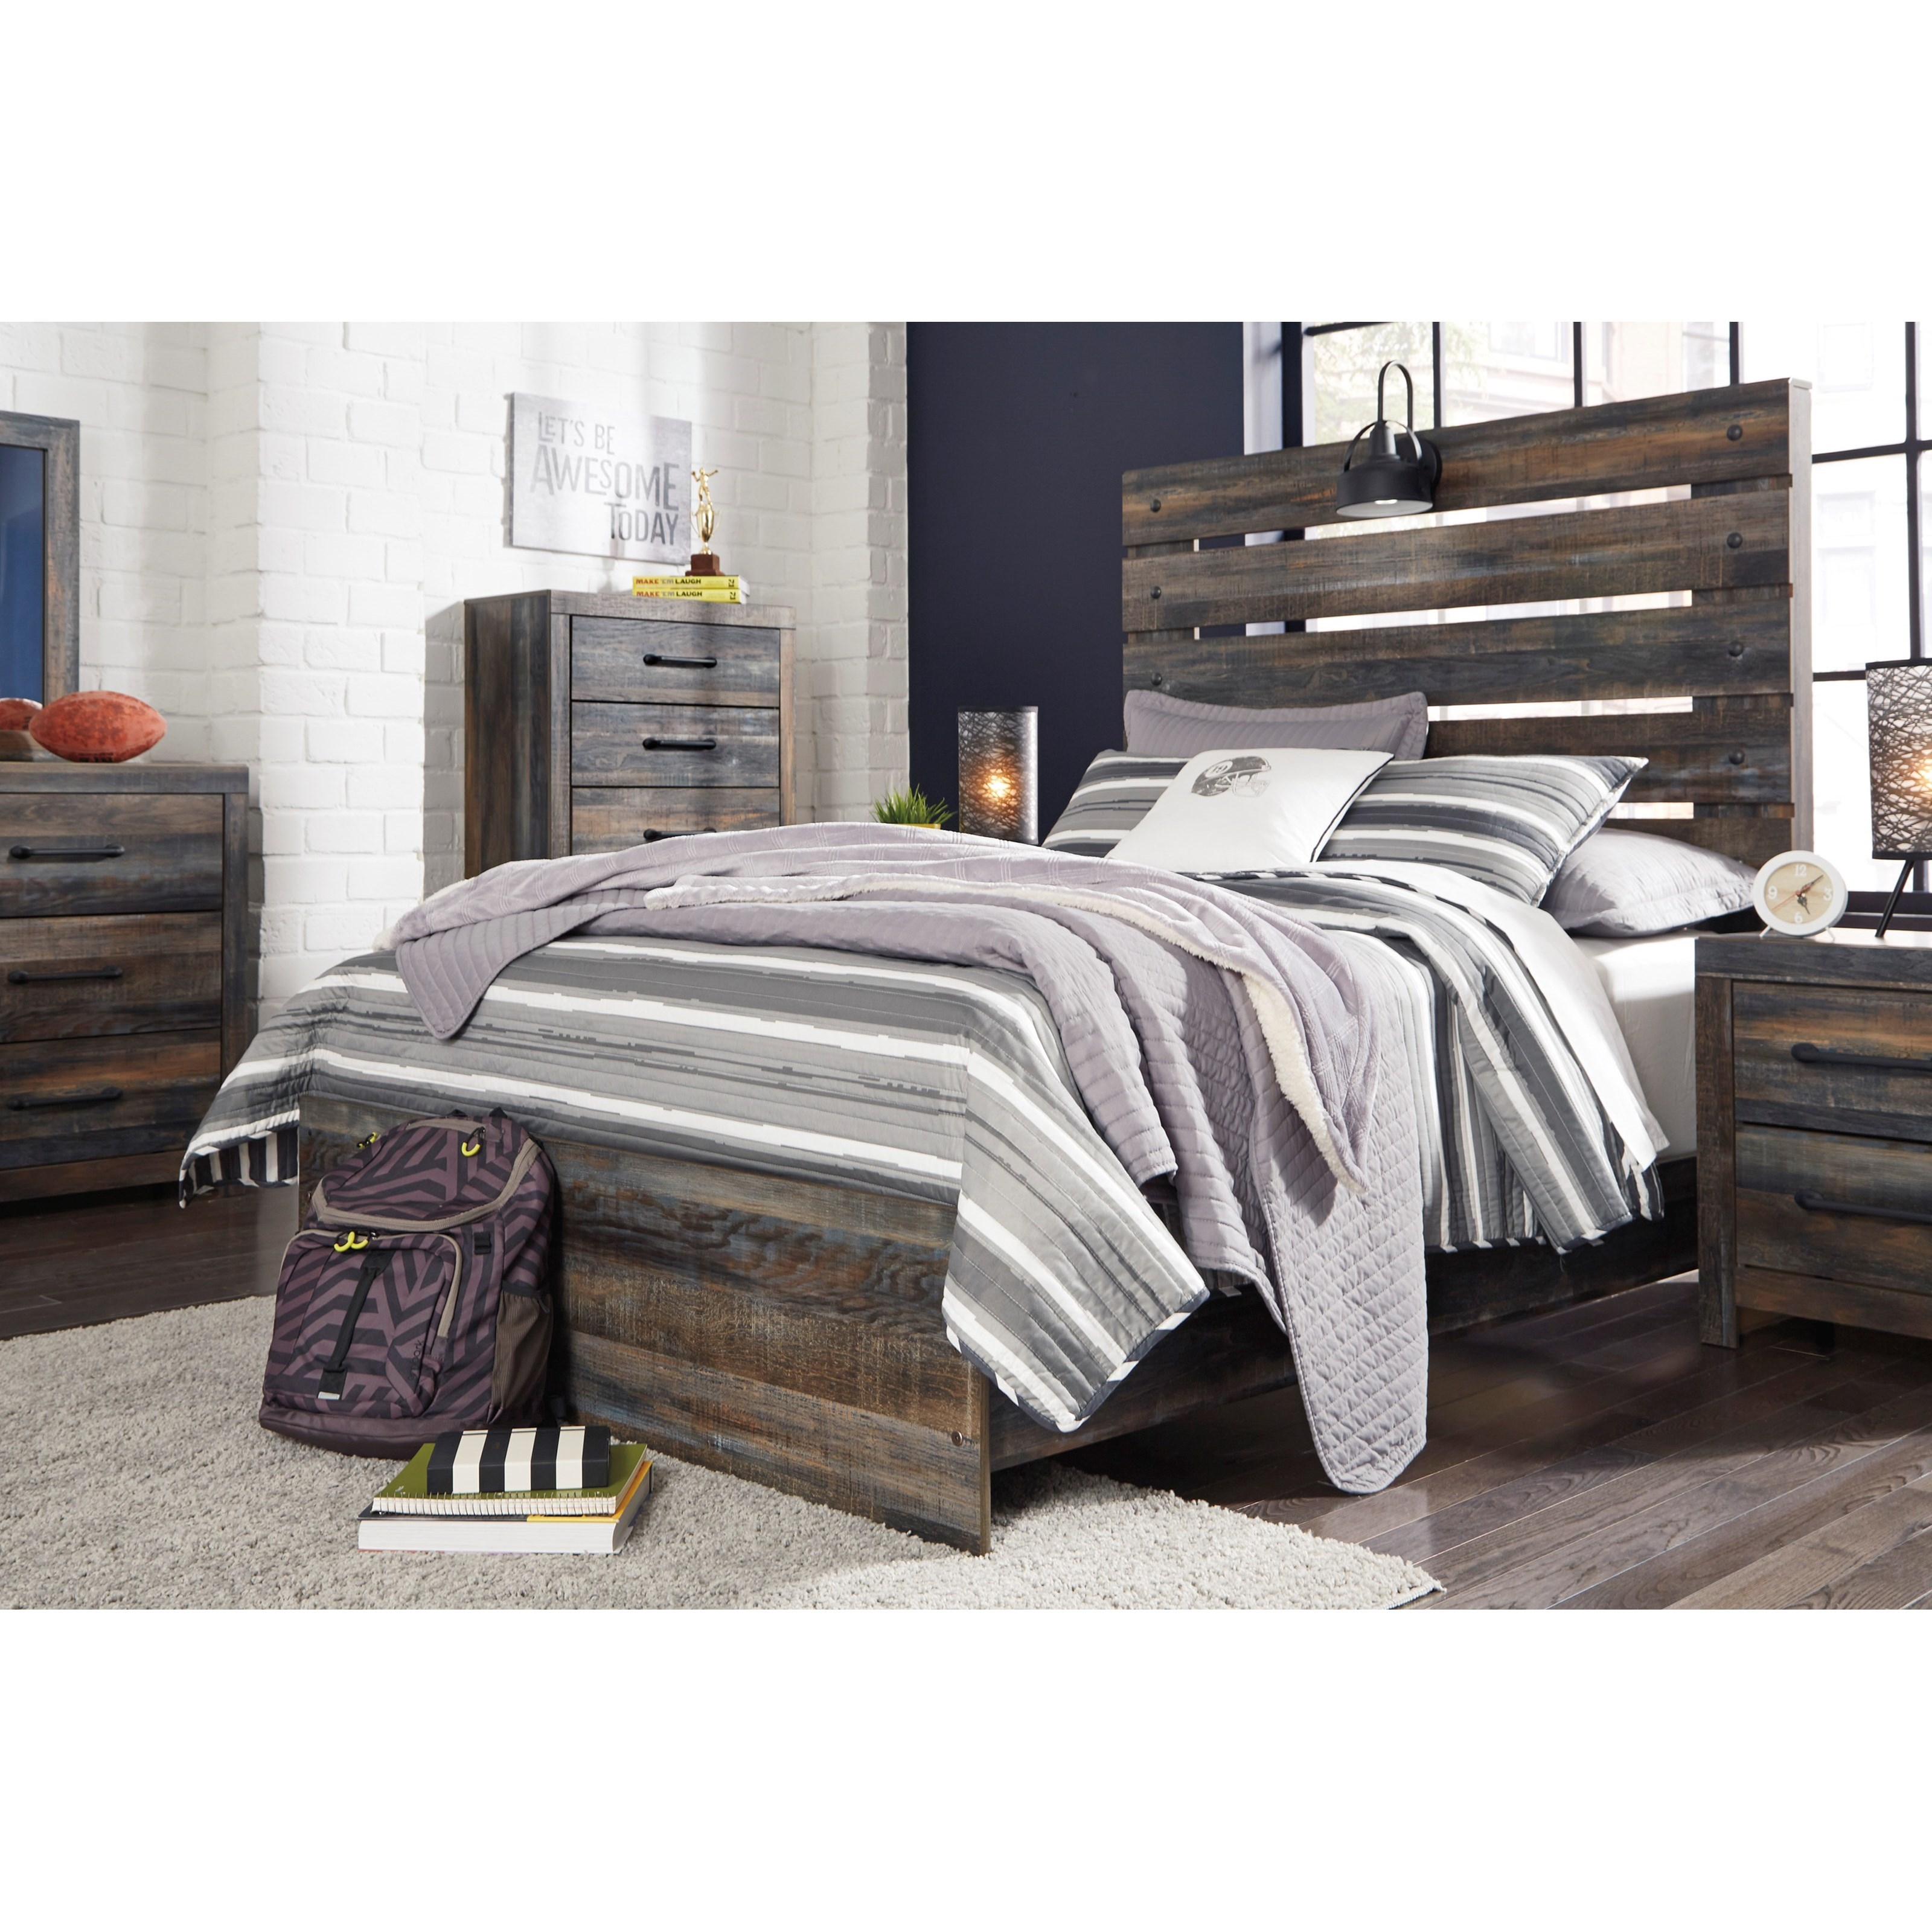 Signature design by ashley drystan full bedroom group - Ashley furniture full bedroom sets ...